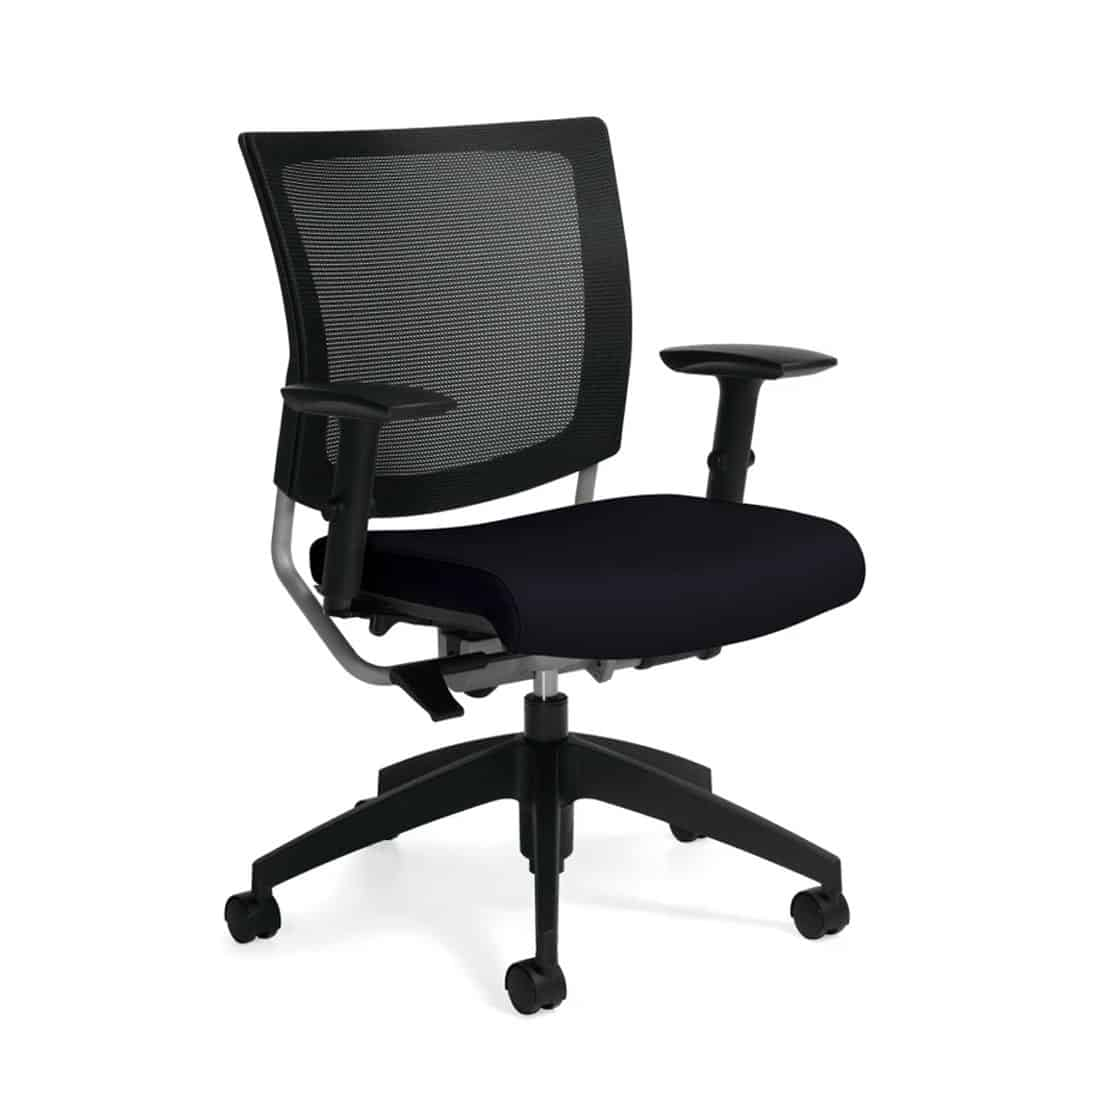 Graphic desk chair